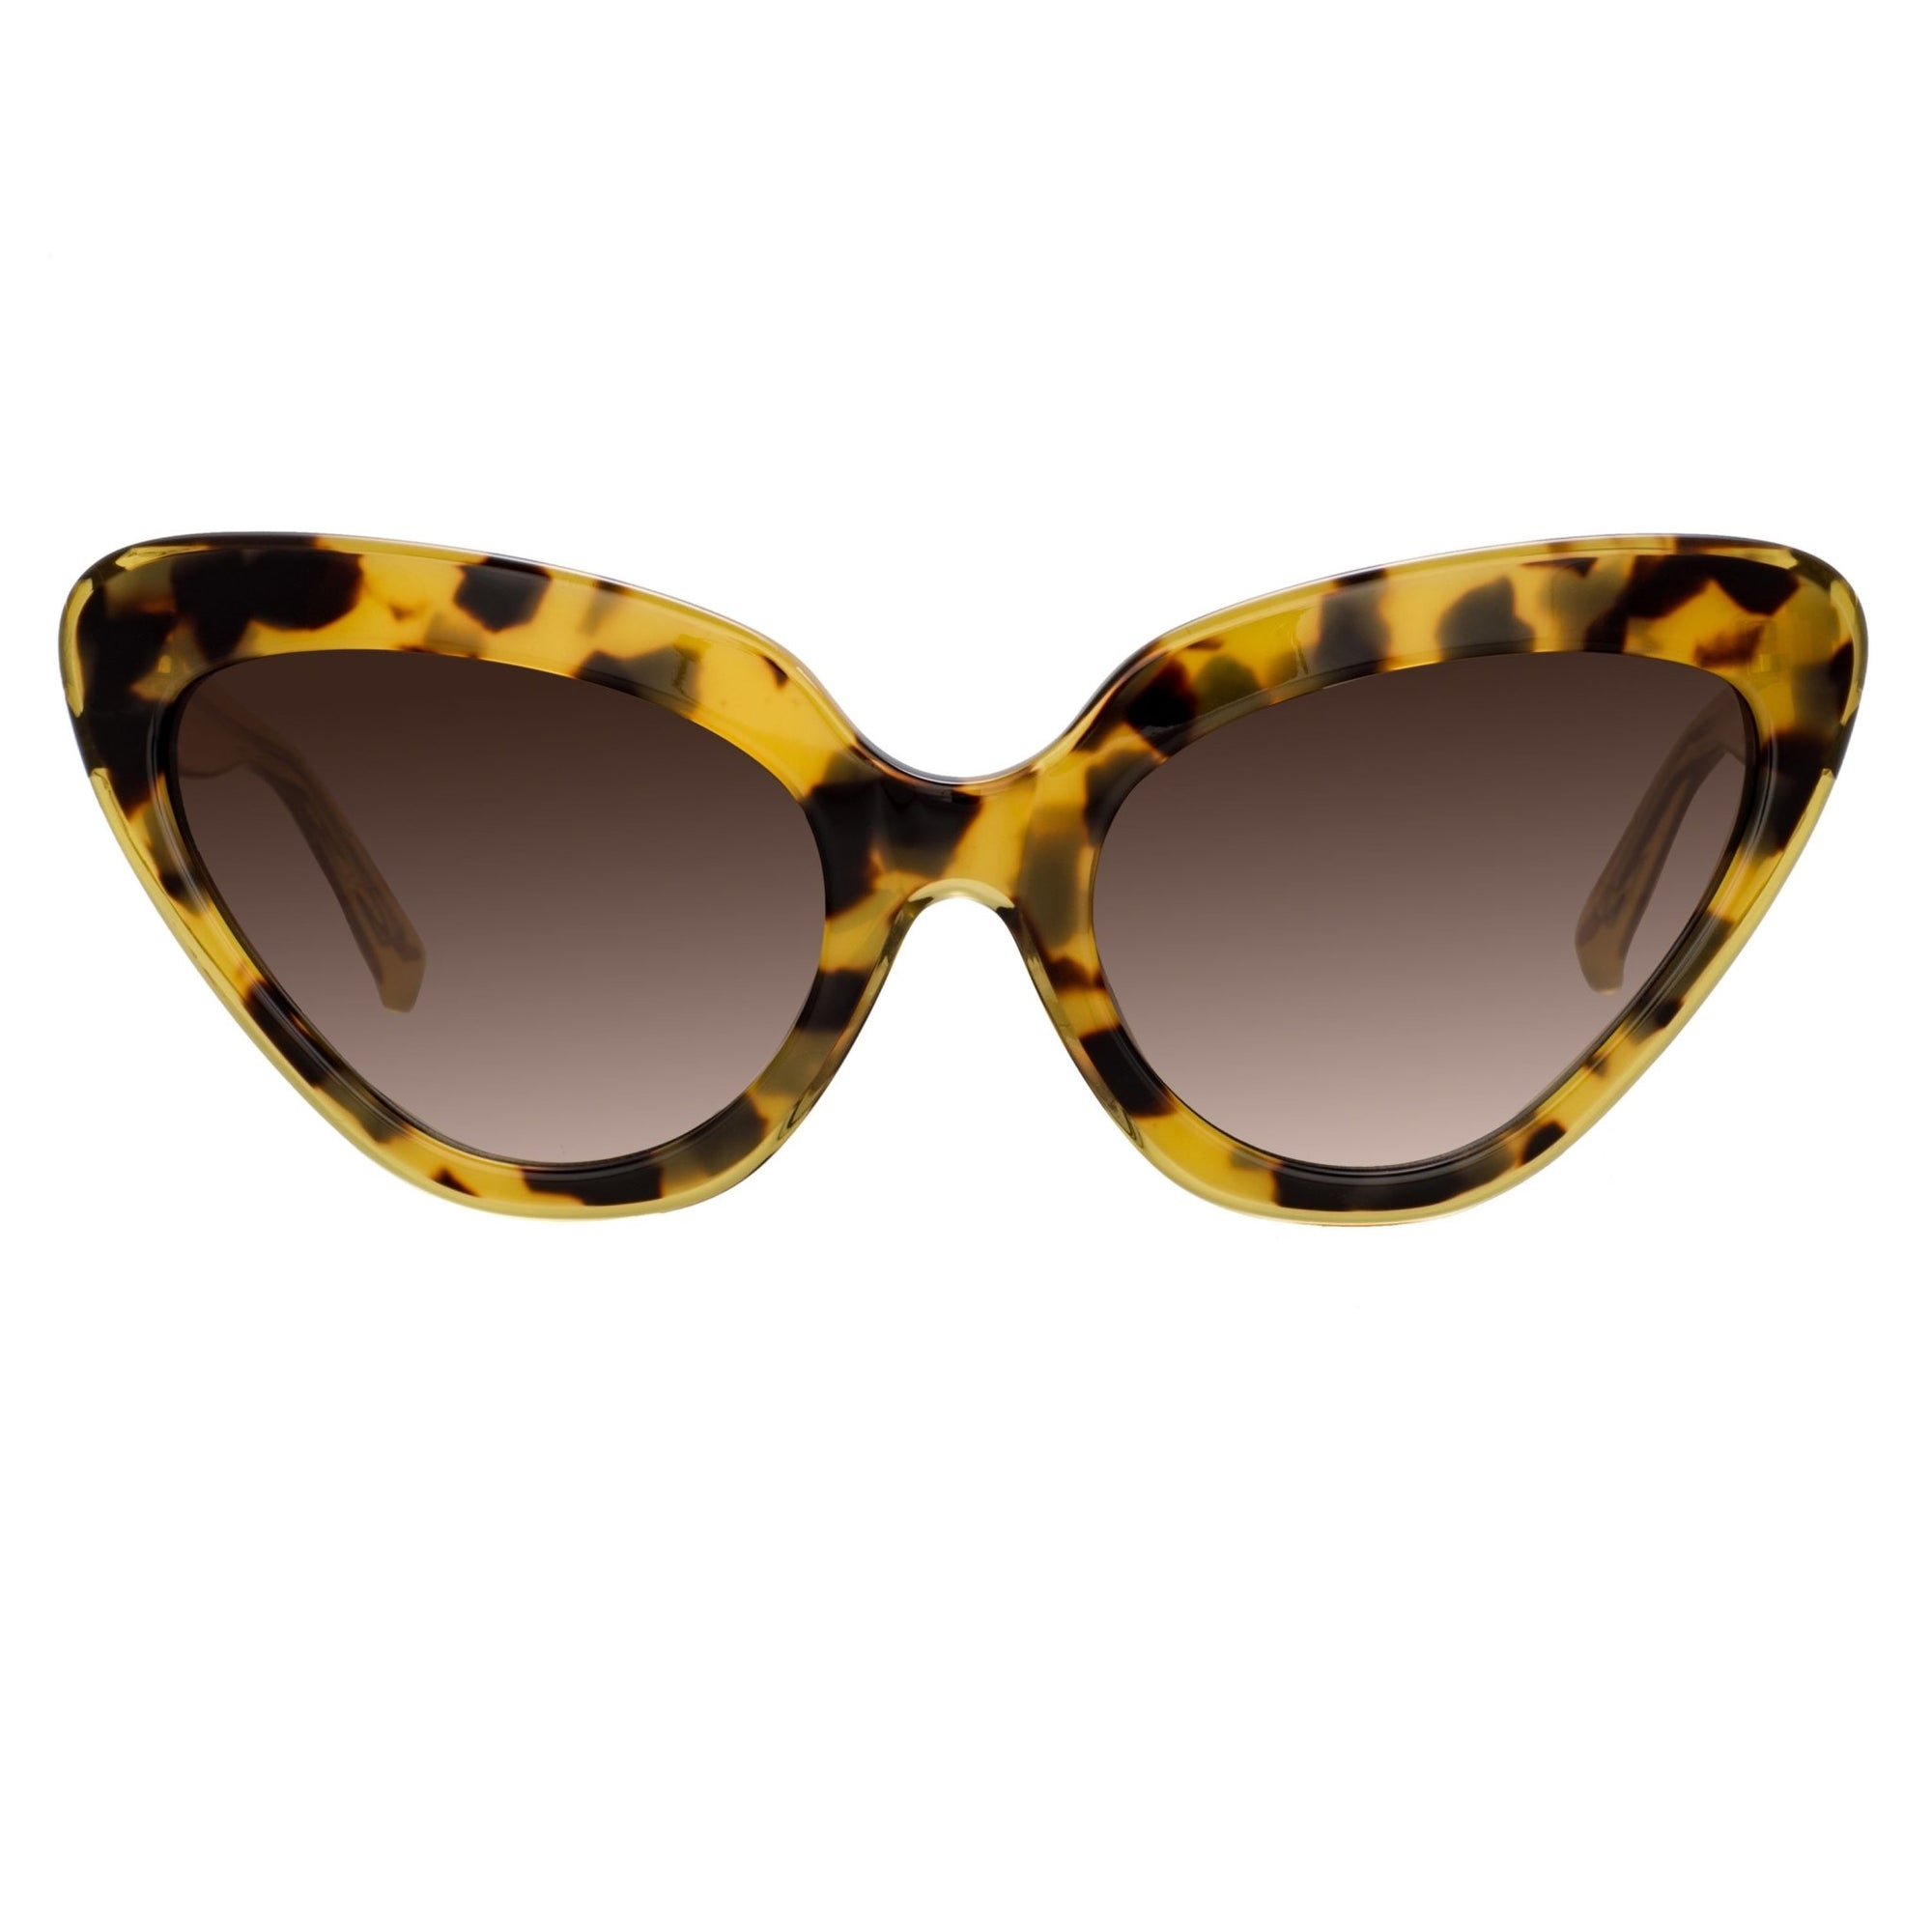 Erdem Women Sunglasses Cat Eye Tortoise Shell Yellow with Brown Graduated Lenses EDM29C2SUN - Watches & Crystals